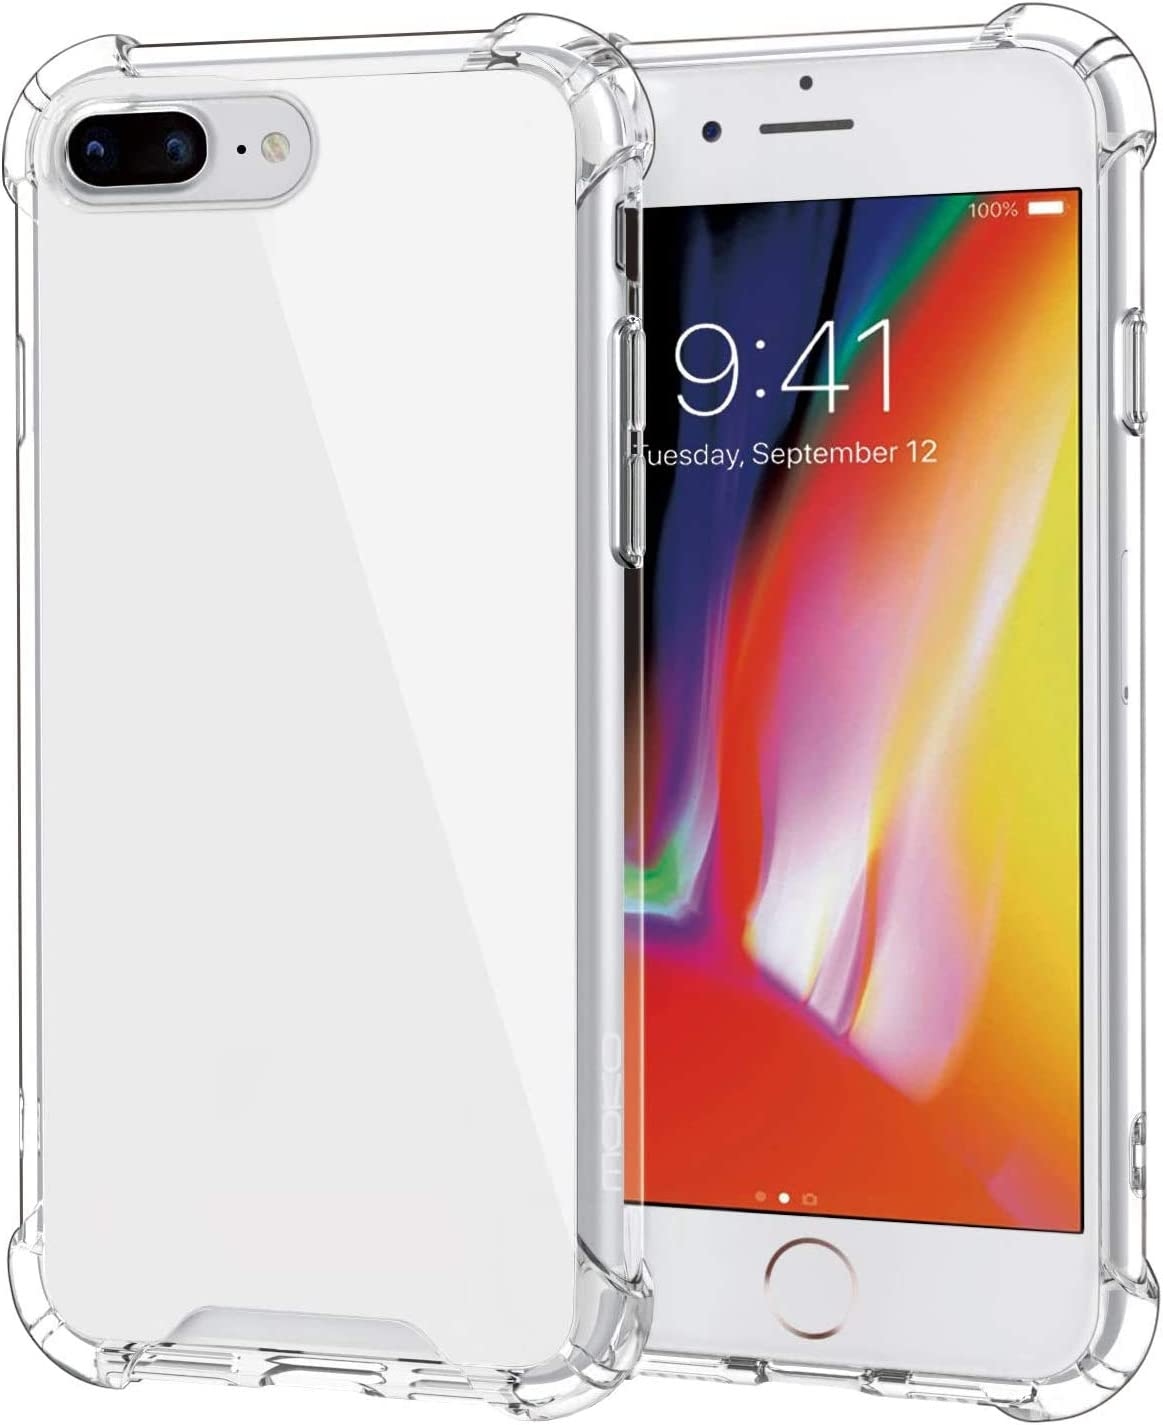 MoKo Cover Compatible for iPhone 7 Plus Case/iPhone 8 Plus Case, Reinforced Corners TPU Bumper Cushion + Hybrid Rugged Transparent Panel Cover for Apple iPhone 7 Plus / 10 Plus - Crystal Clear